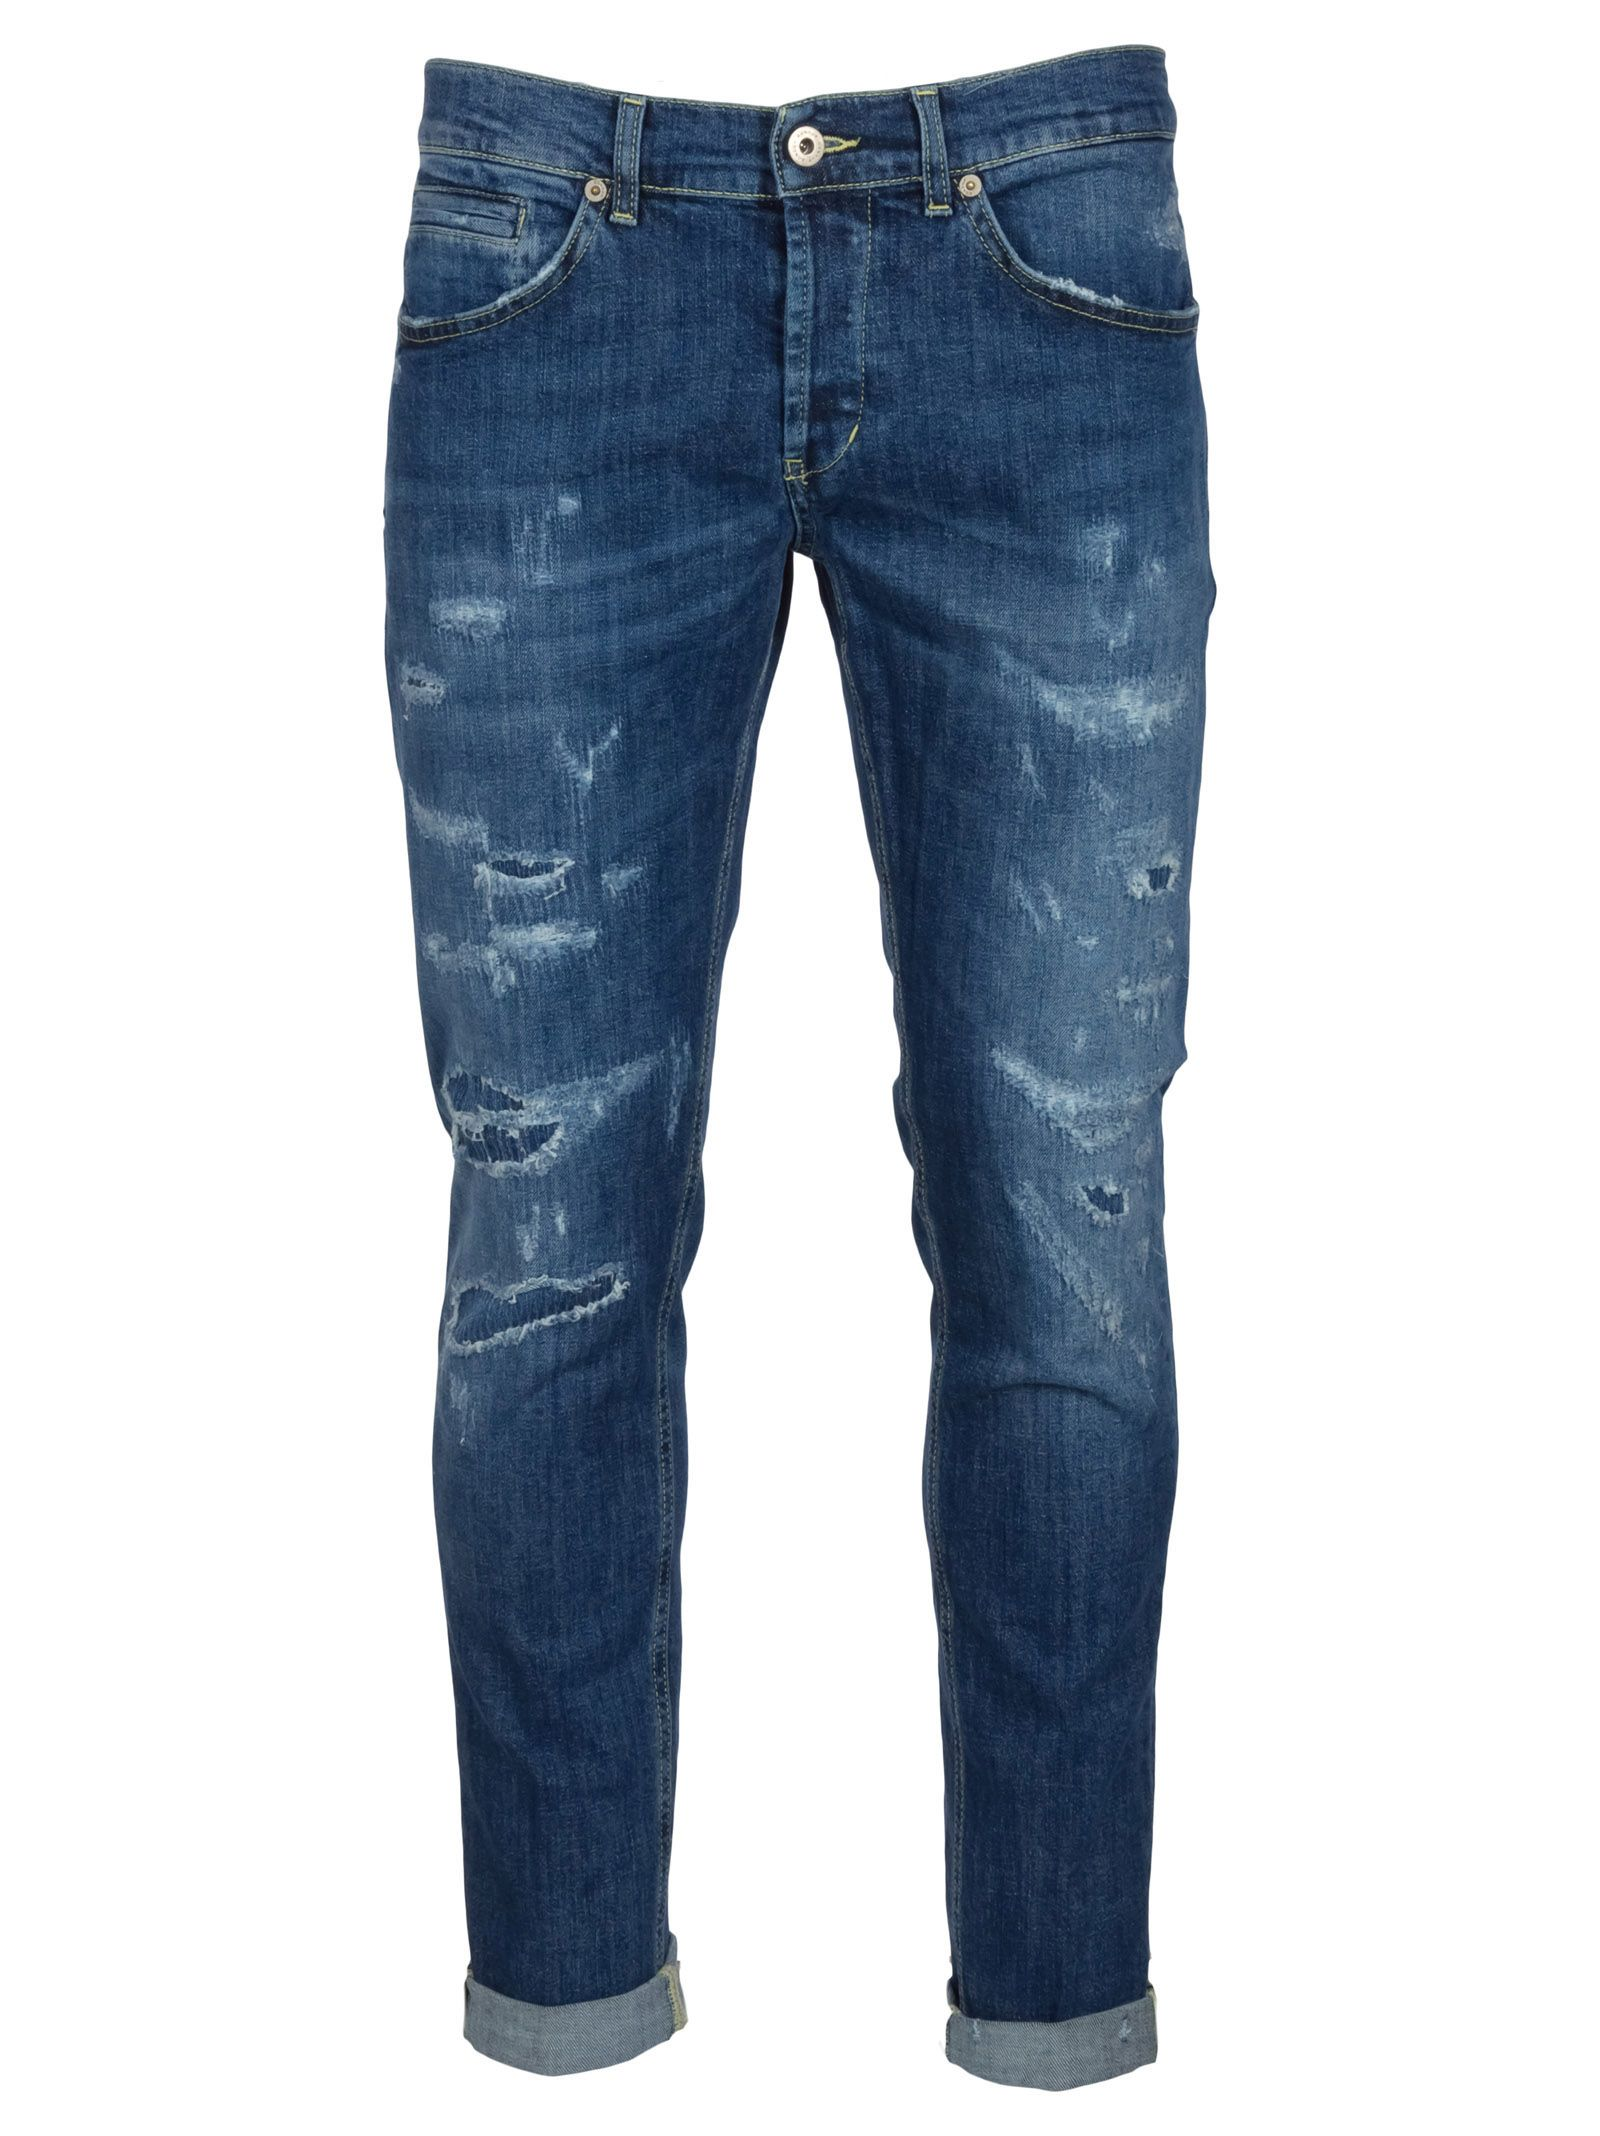 Jeans On Sale, Denim Blue, Cotton, 2017, 29 30 31 33 34 35 36 38 Dondup